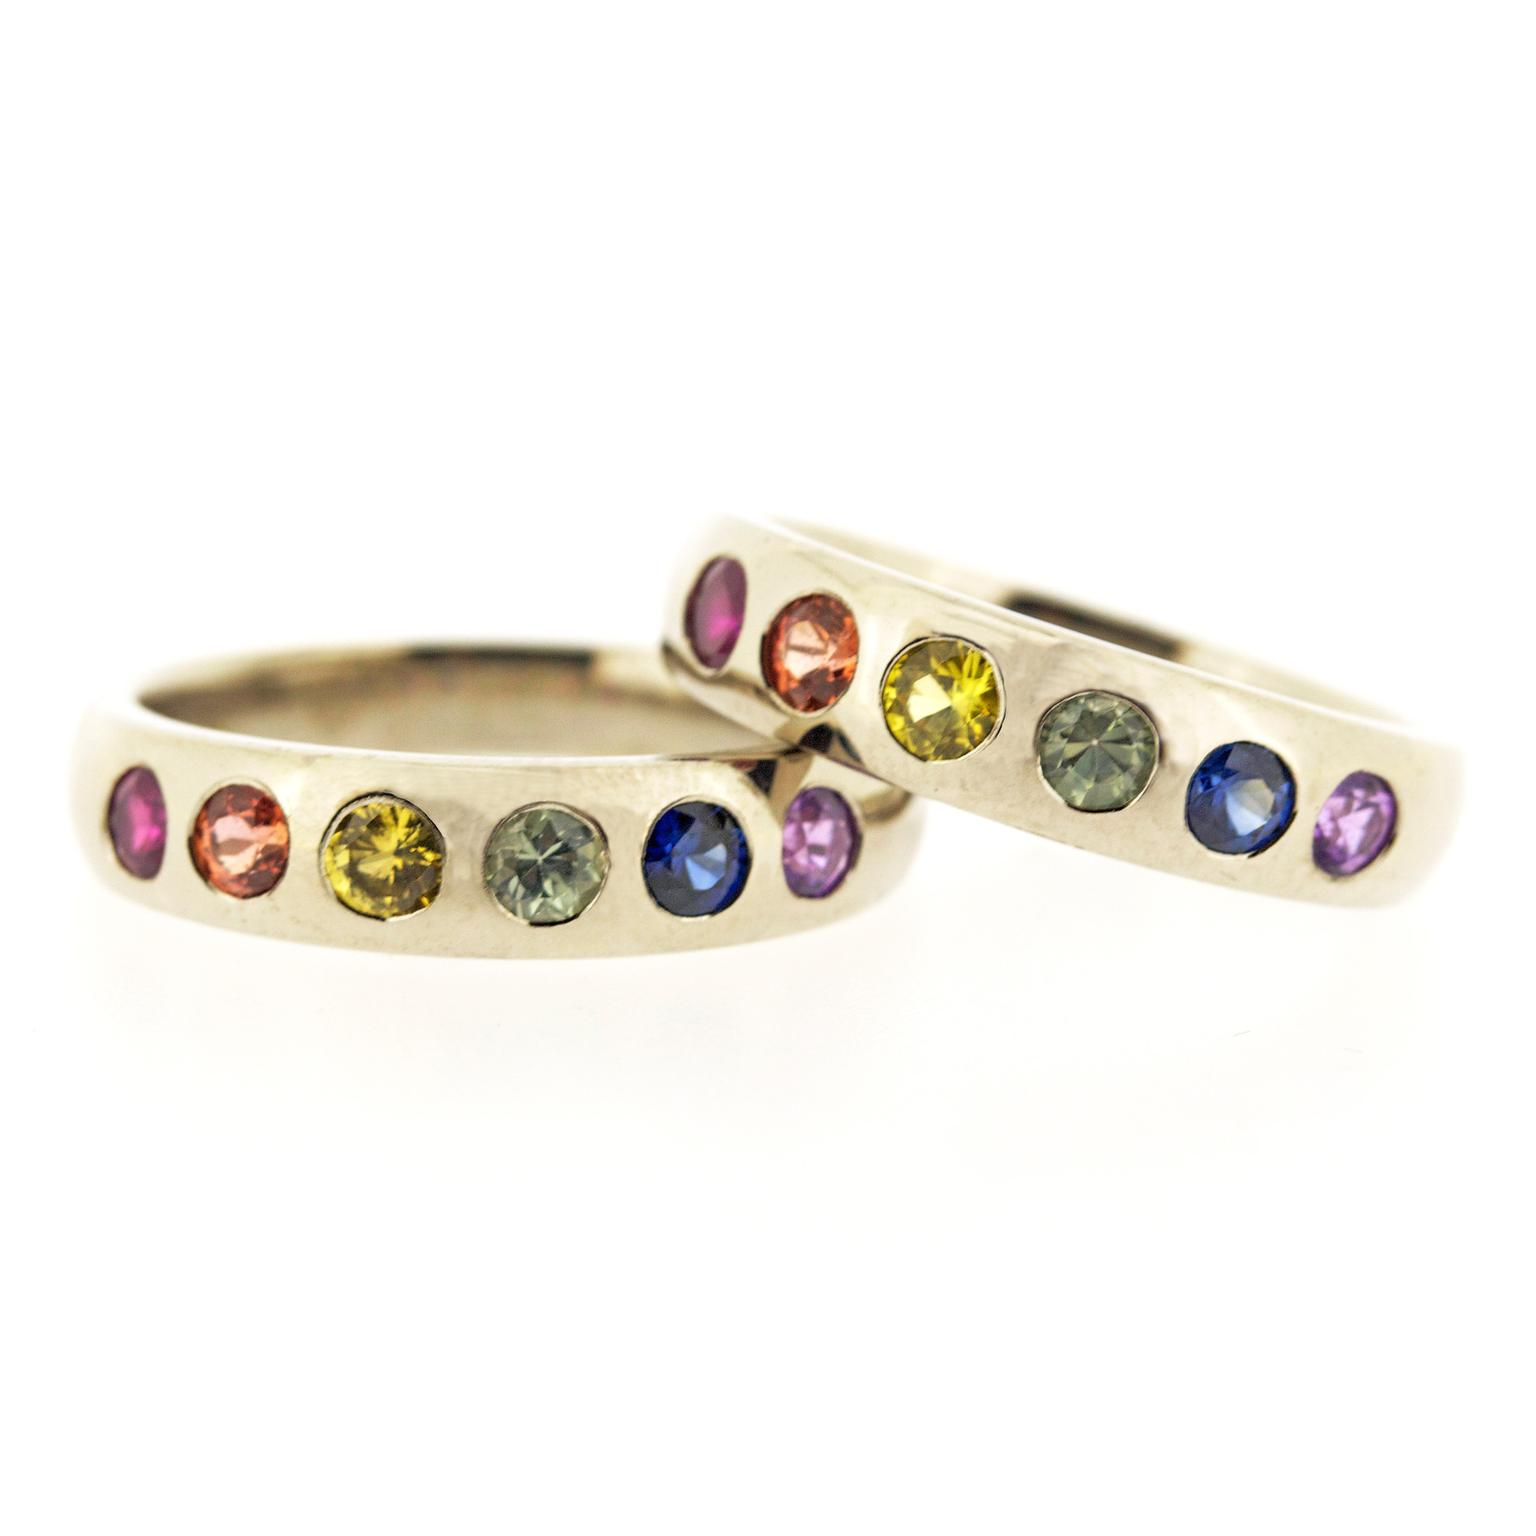 Baroque Brighton rainbow ring set with sapphires